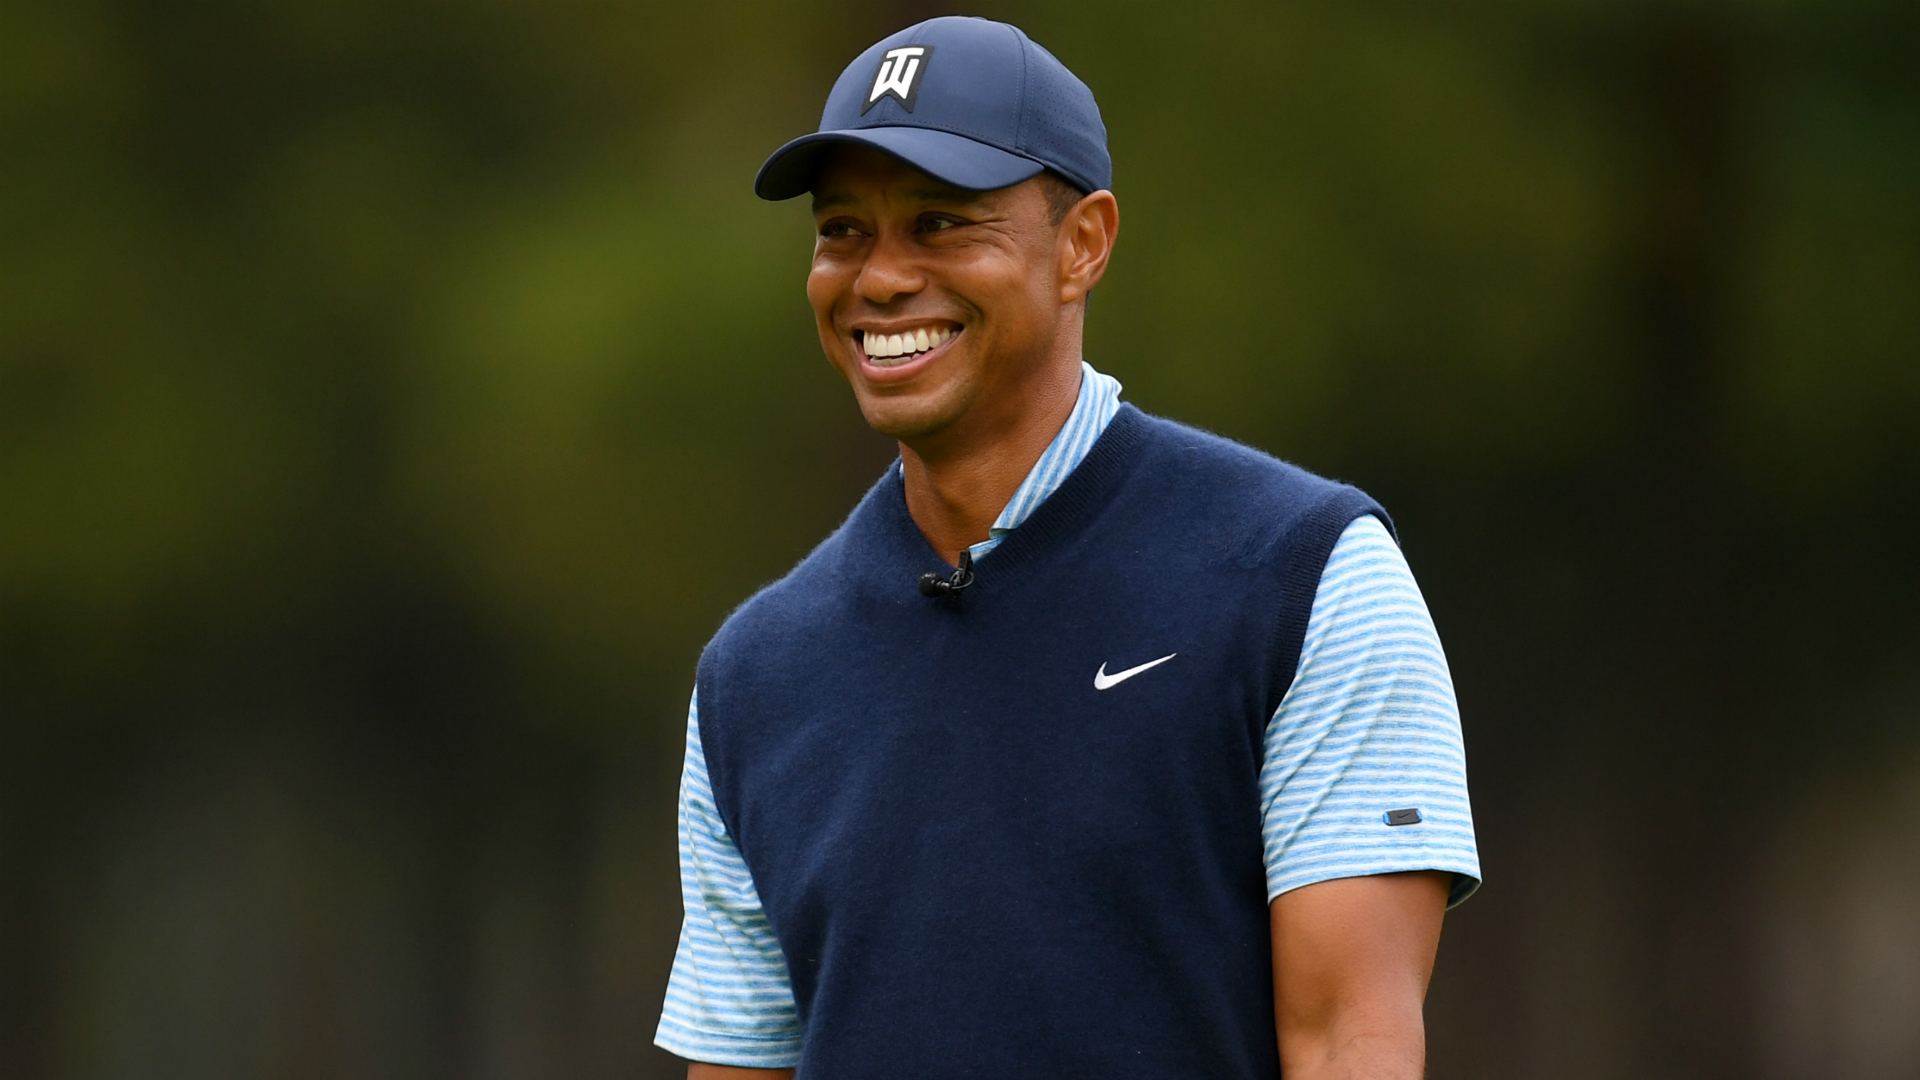 Woods not thinking about bettering Snead haul at Torrey Pines